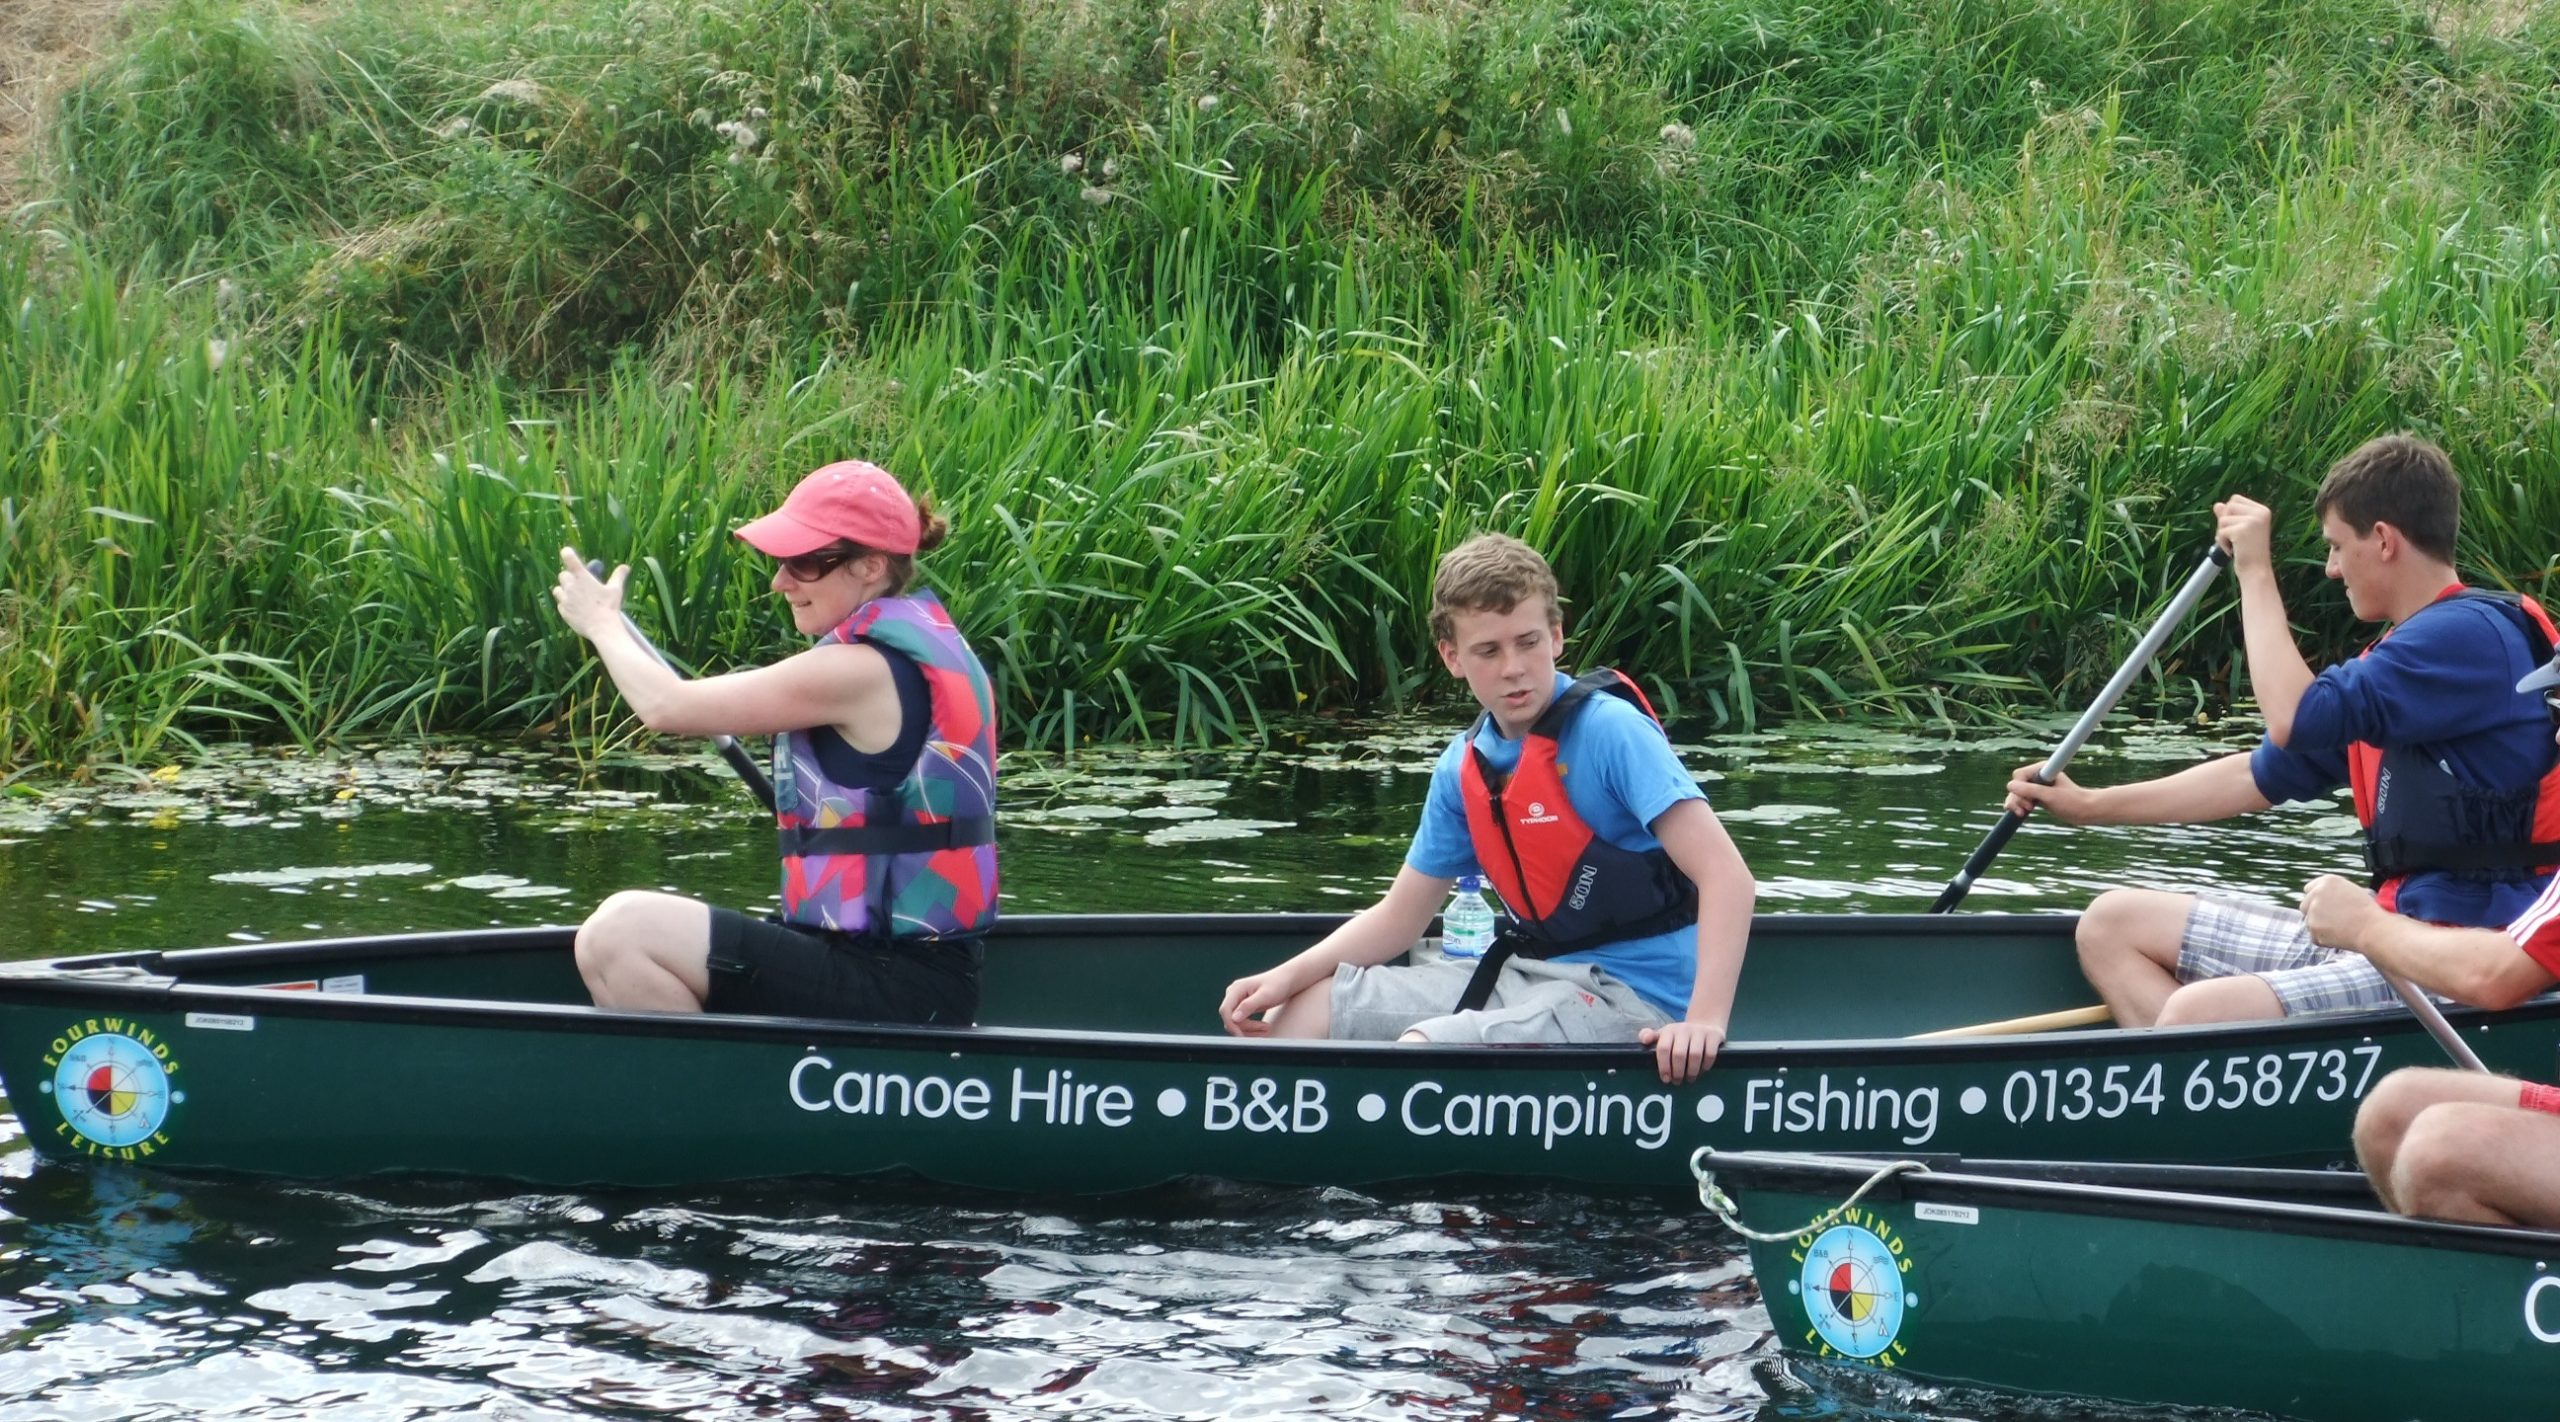 canoe hire in Cambridgeshire at Fourwinds Leisure